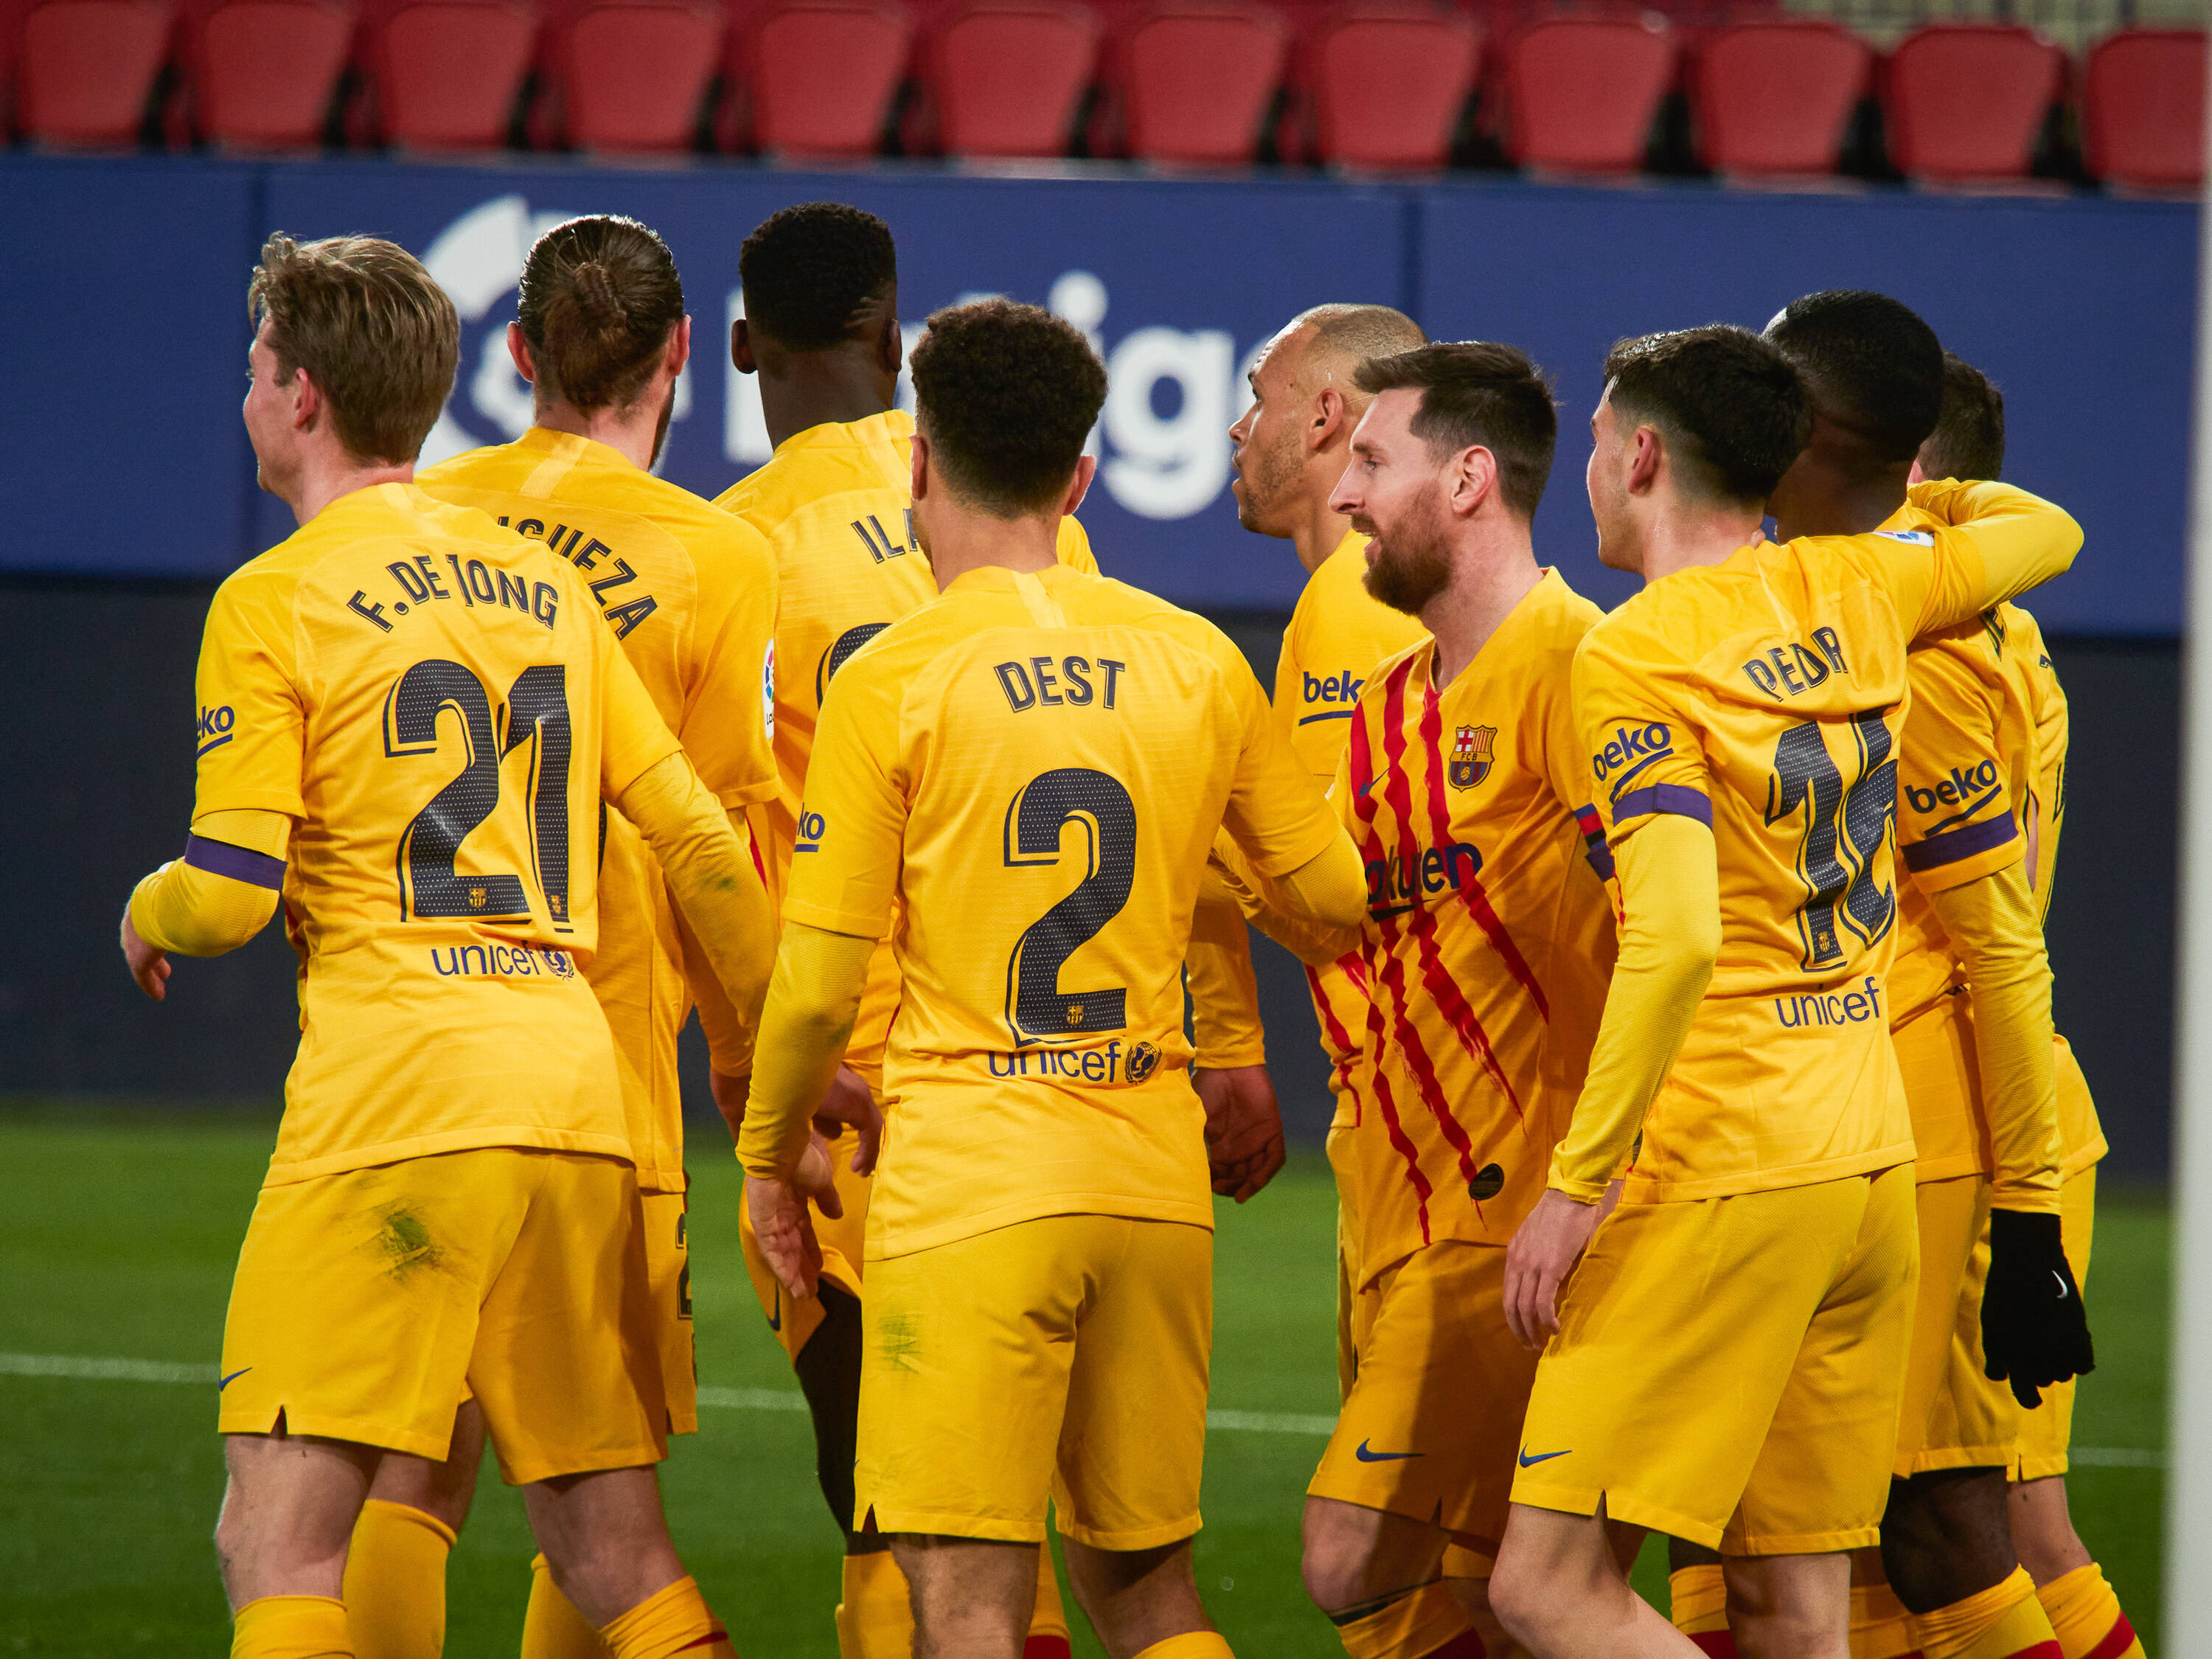 Arsenal rebuffed in their attempts to take advantage of Barcelona's woes and sign star